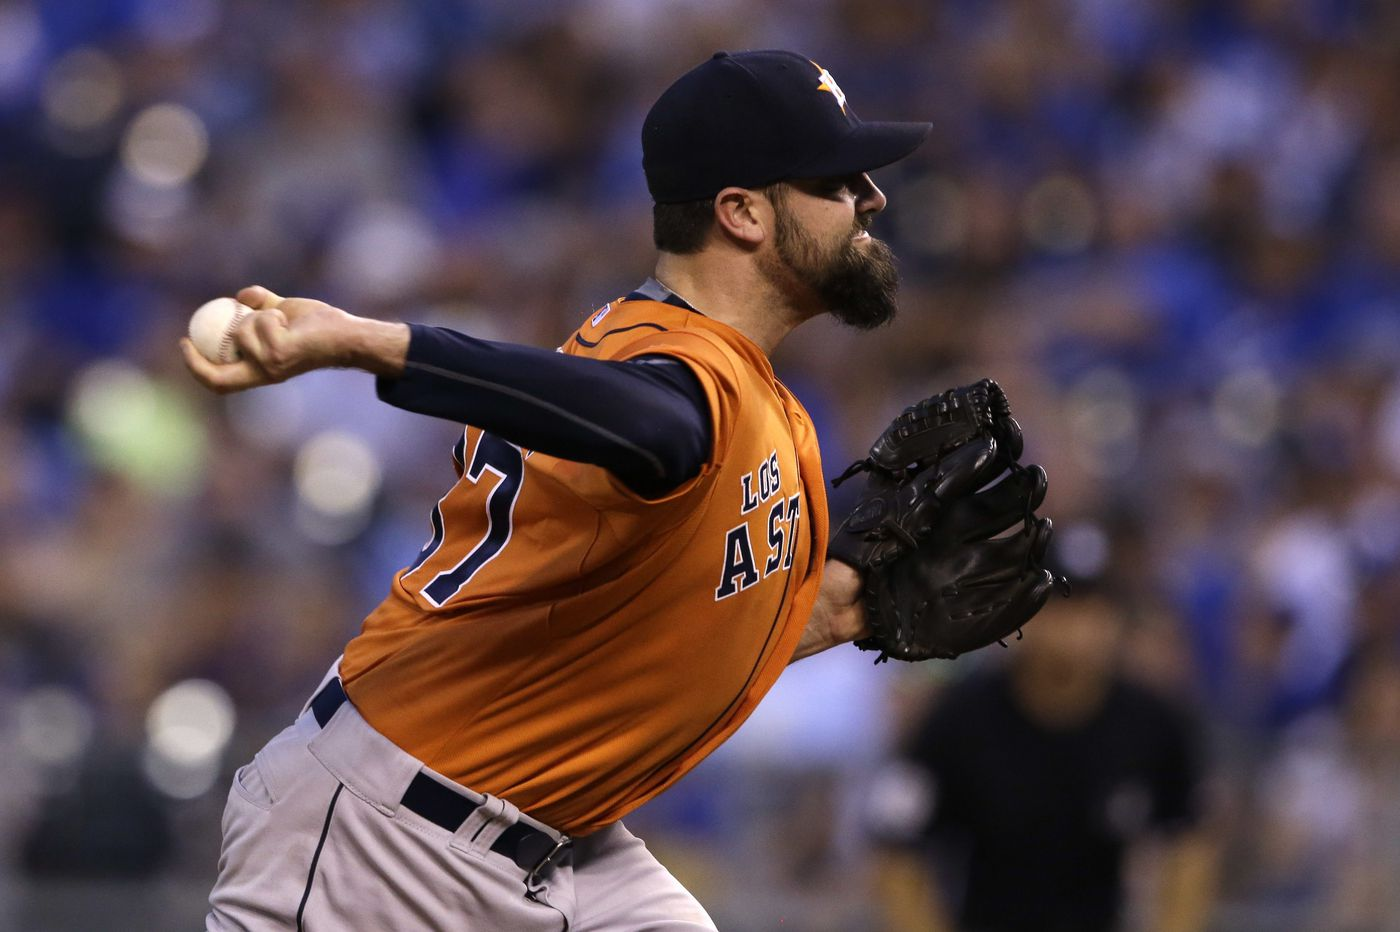 Pat Neshek believes in the young Phillies because he lived through similar success with the Astros